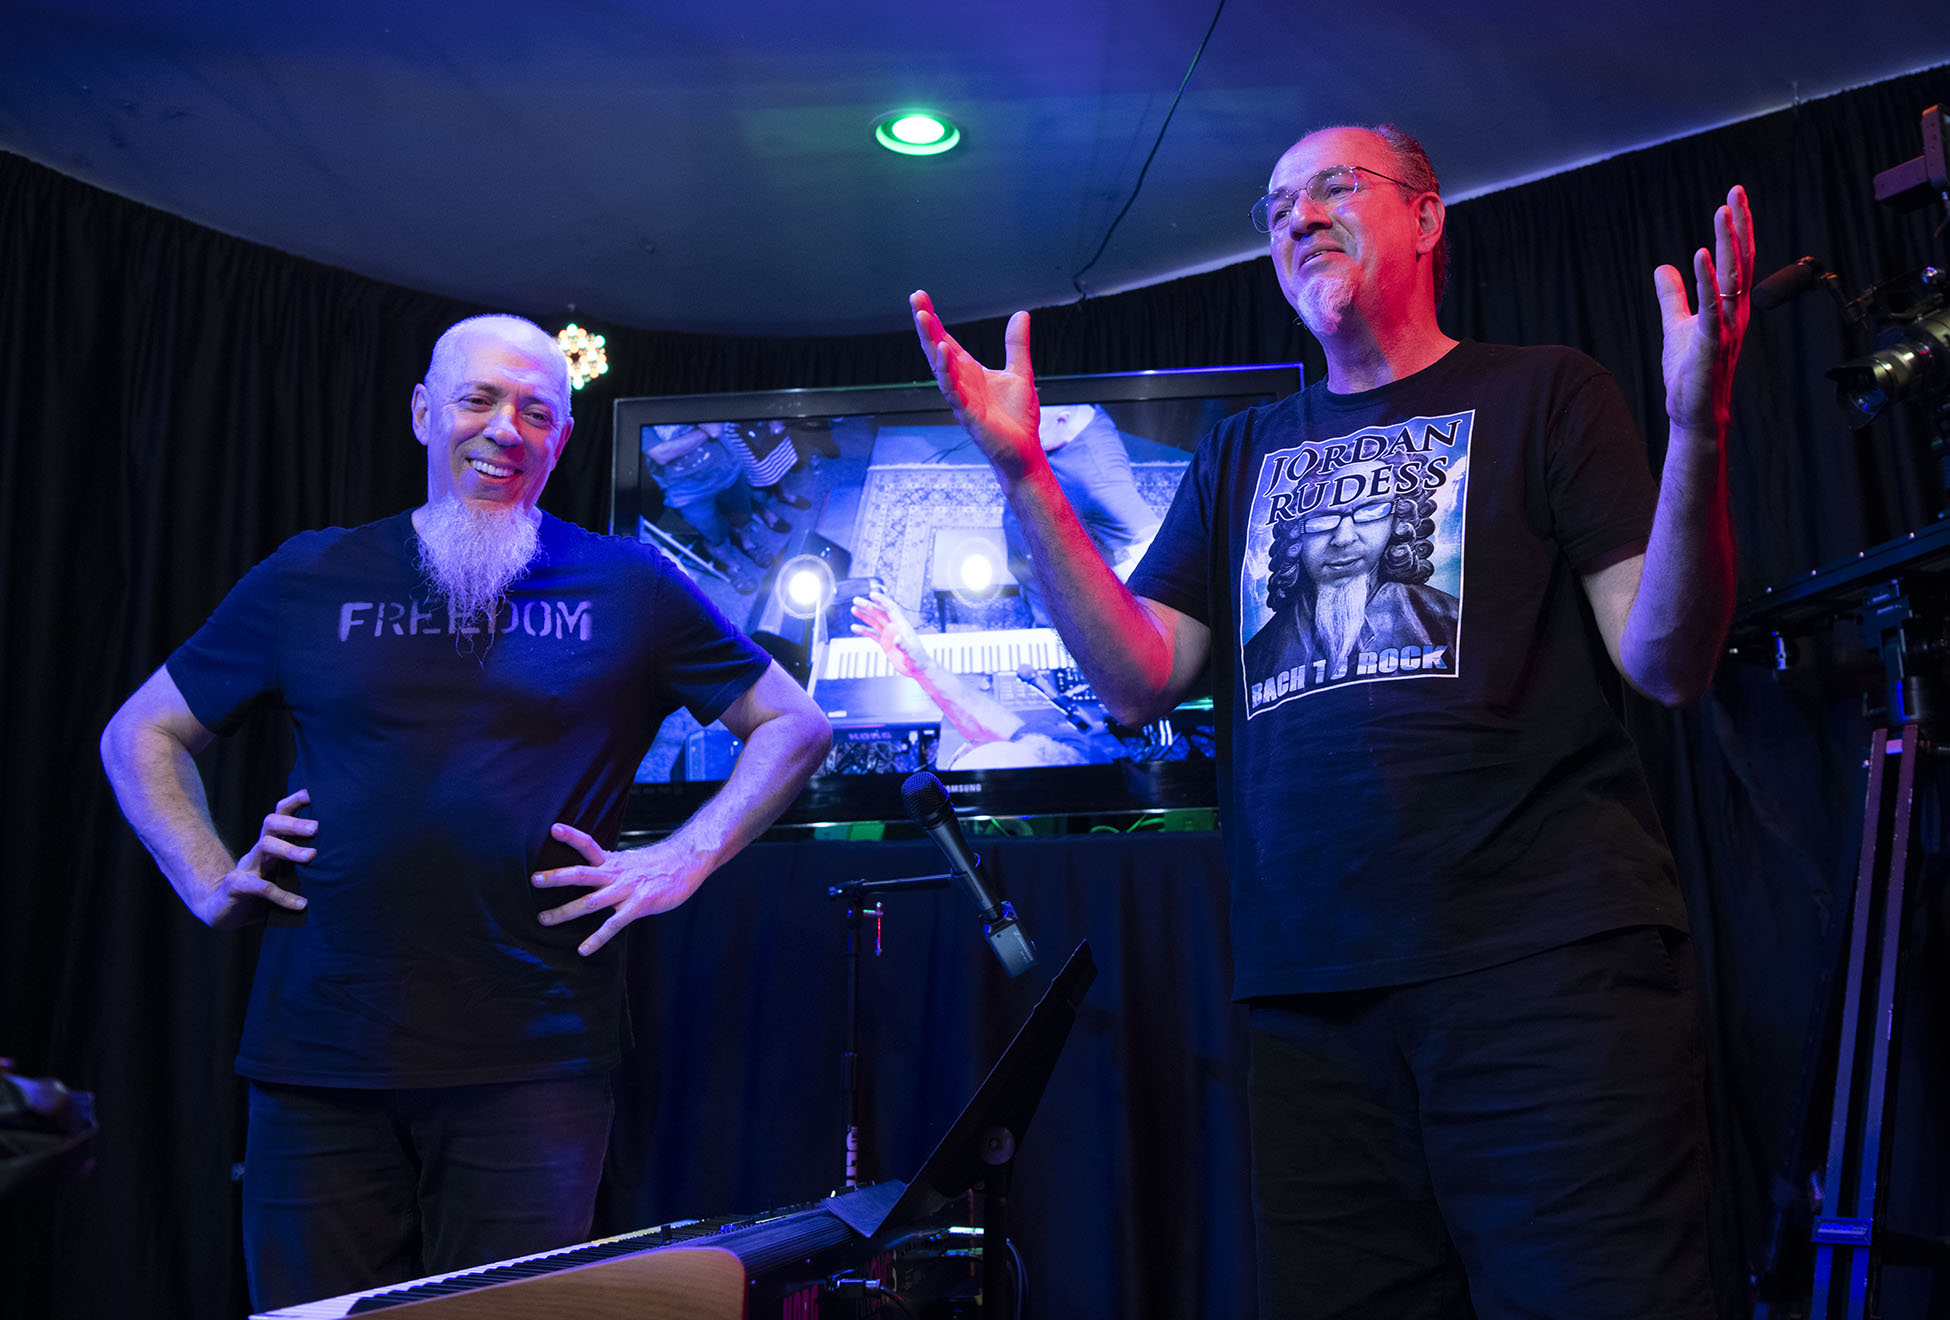 Jordan Rudess and Jerry LoFaro at the LoFaro Center of the Performing Arts, August 17, 2019